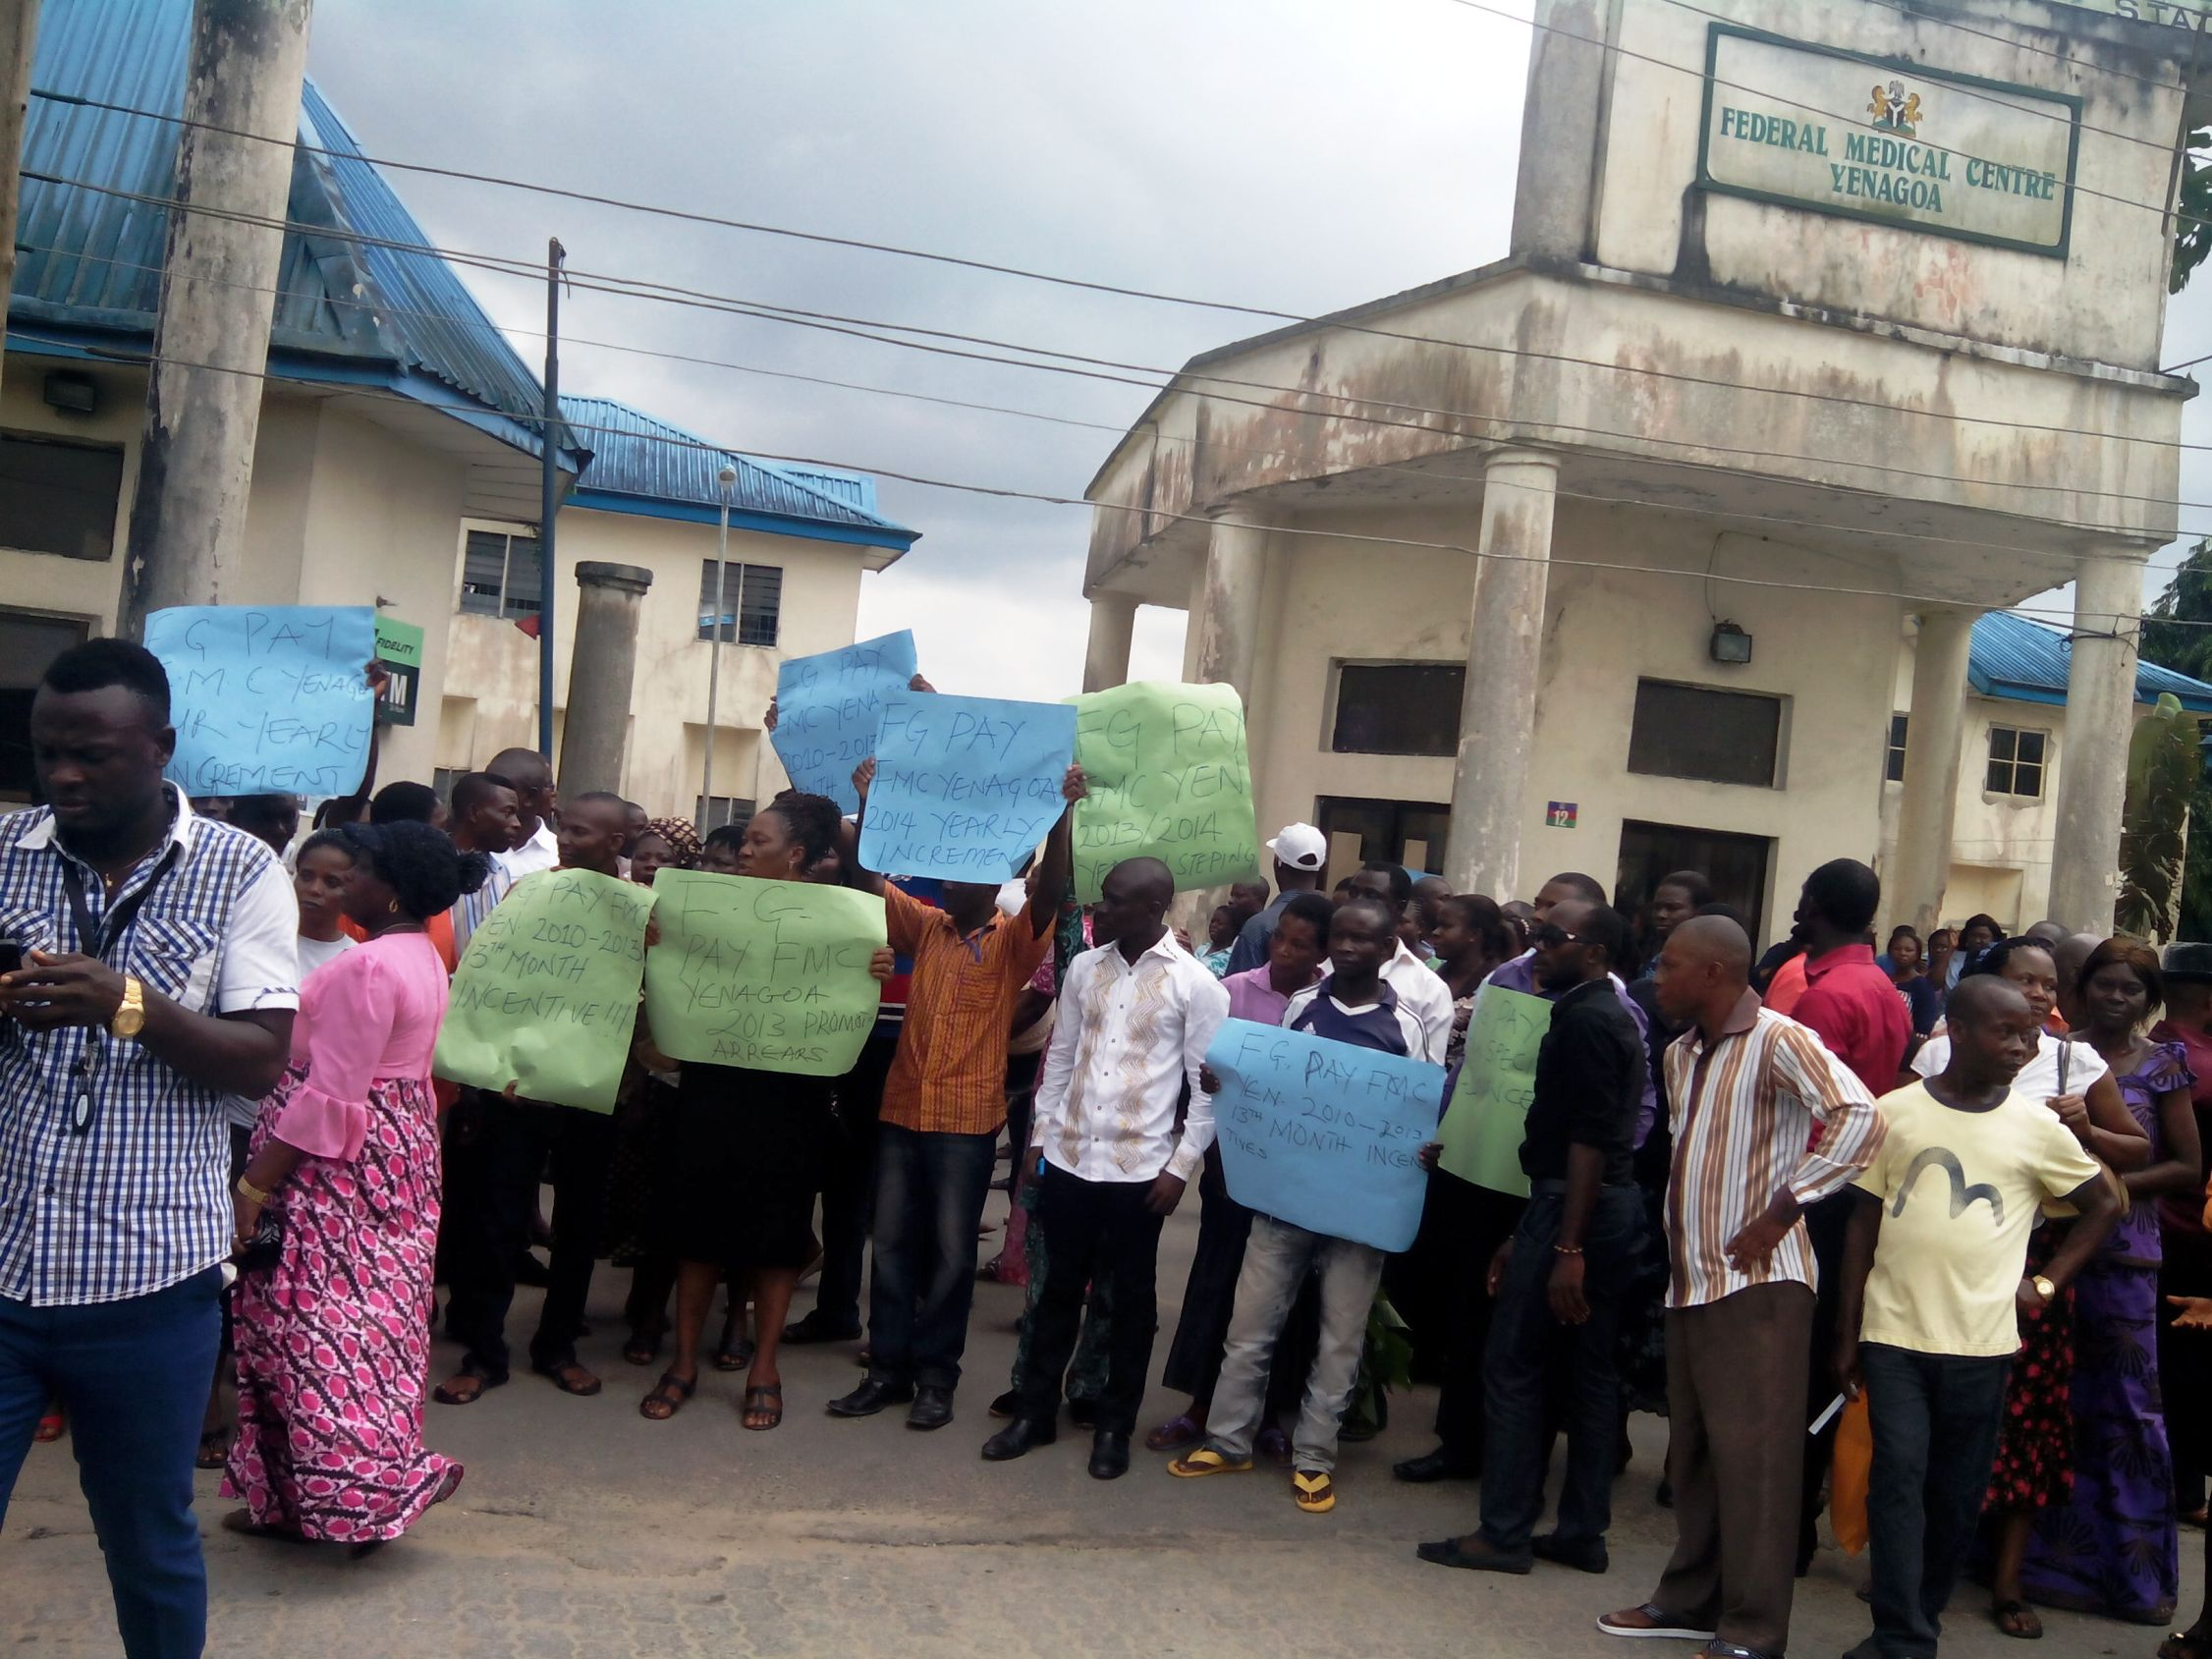 Health Workers Strike Shuts Down Federal Medical Centre Yenagoa